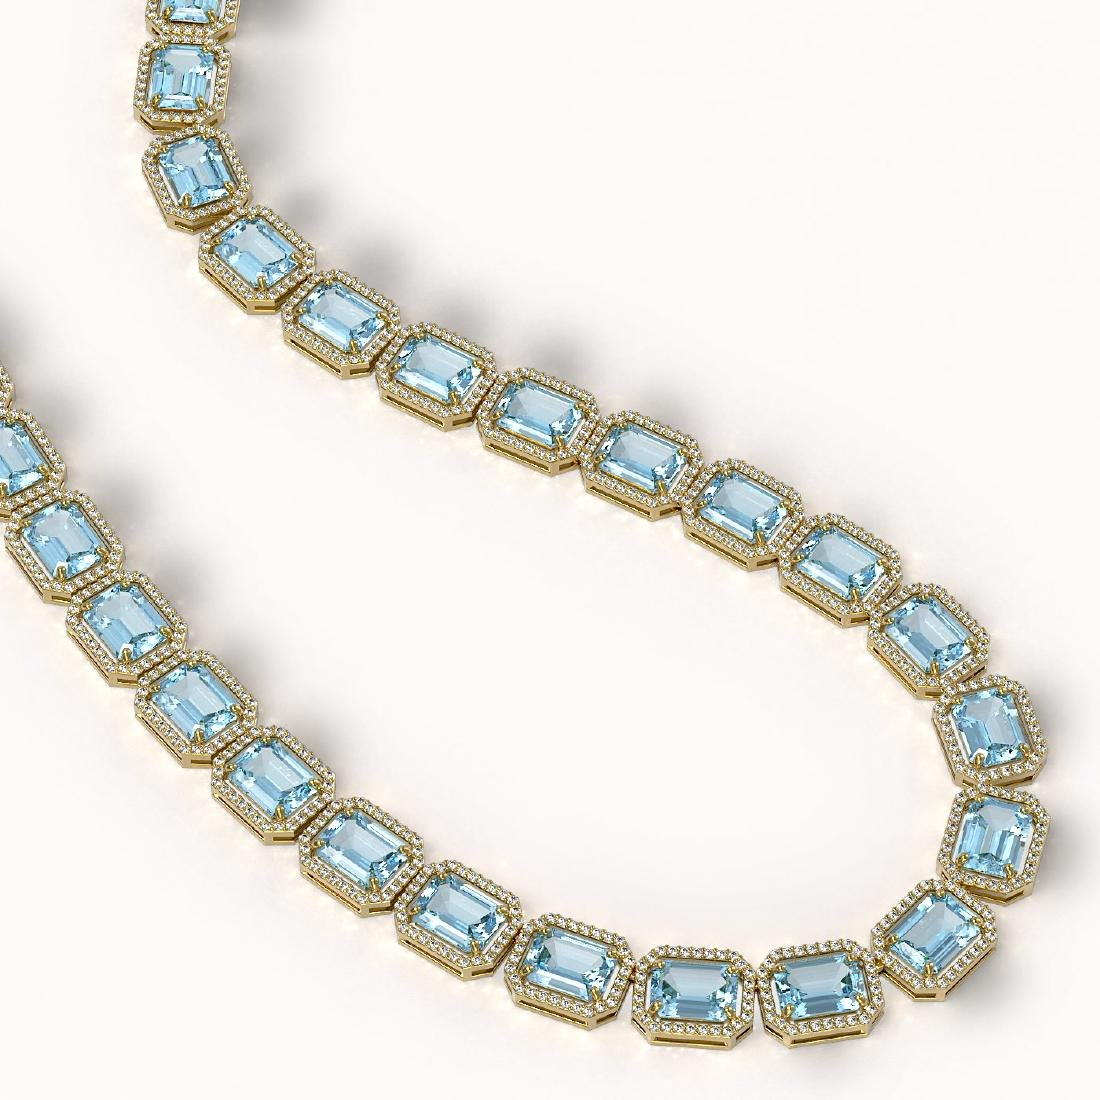 80.98 CTW Aquamarine & Diamond Halo Necklace 10K Yellow - 2